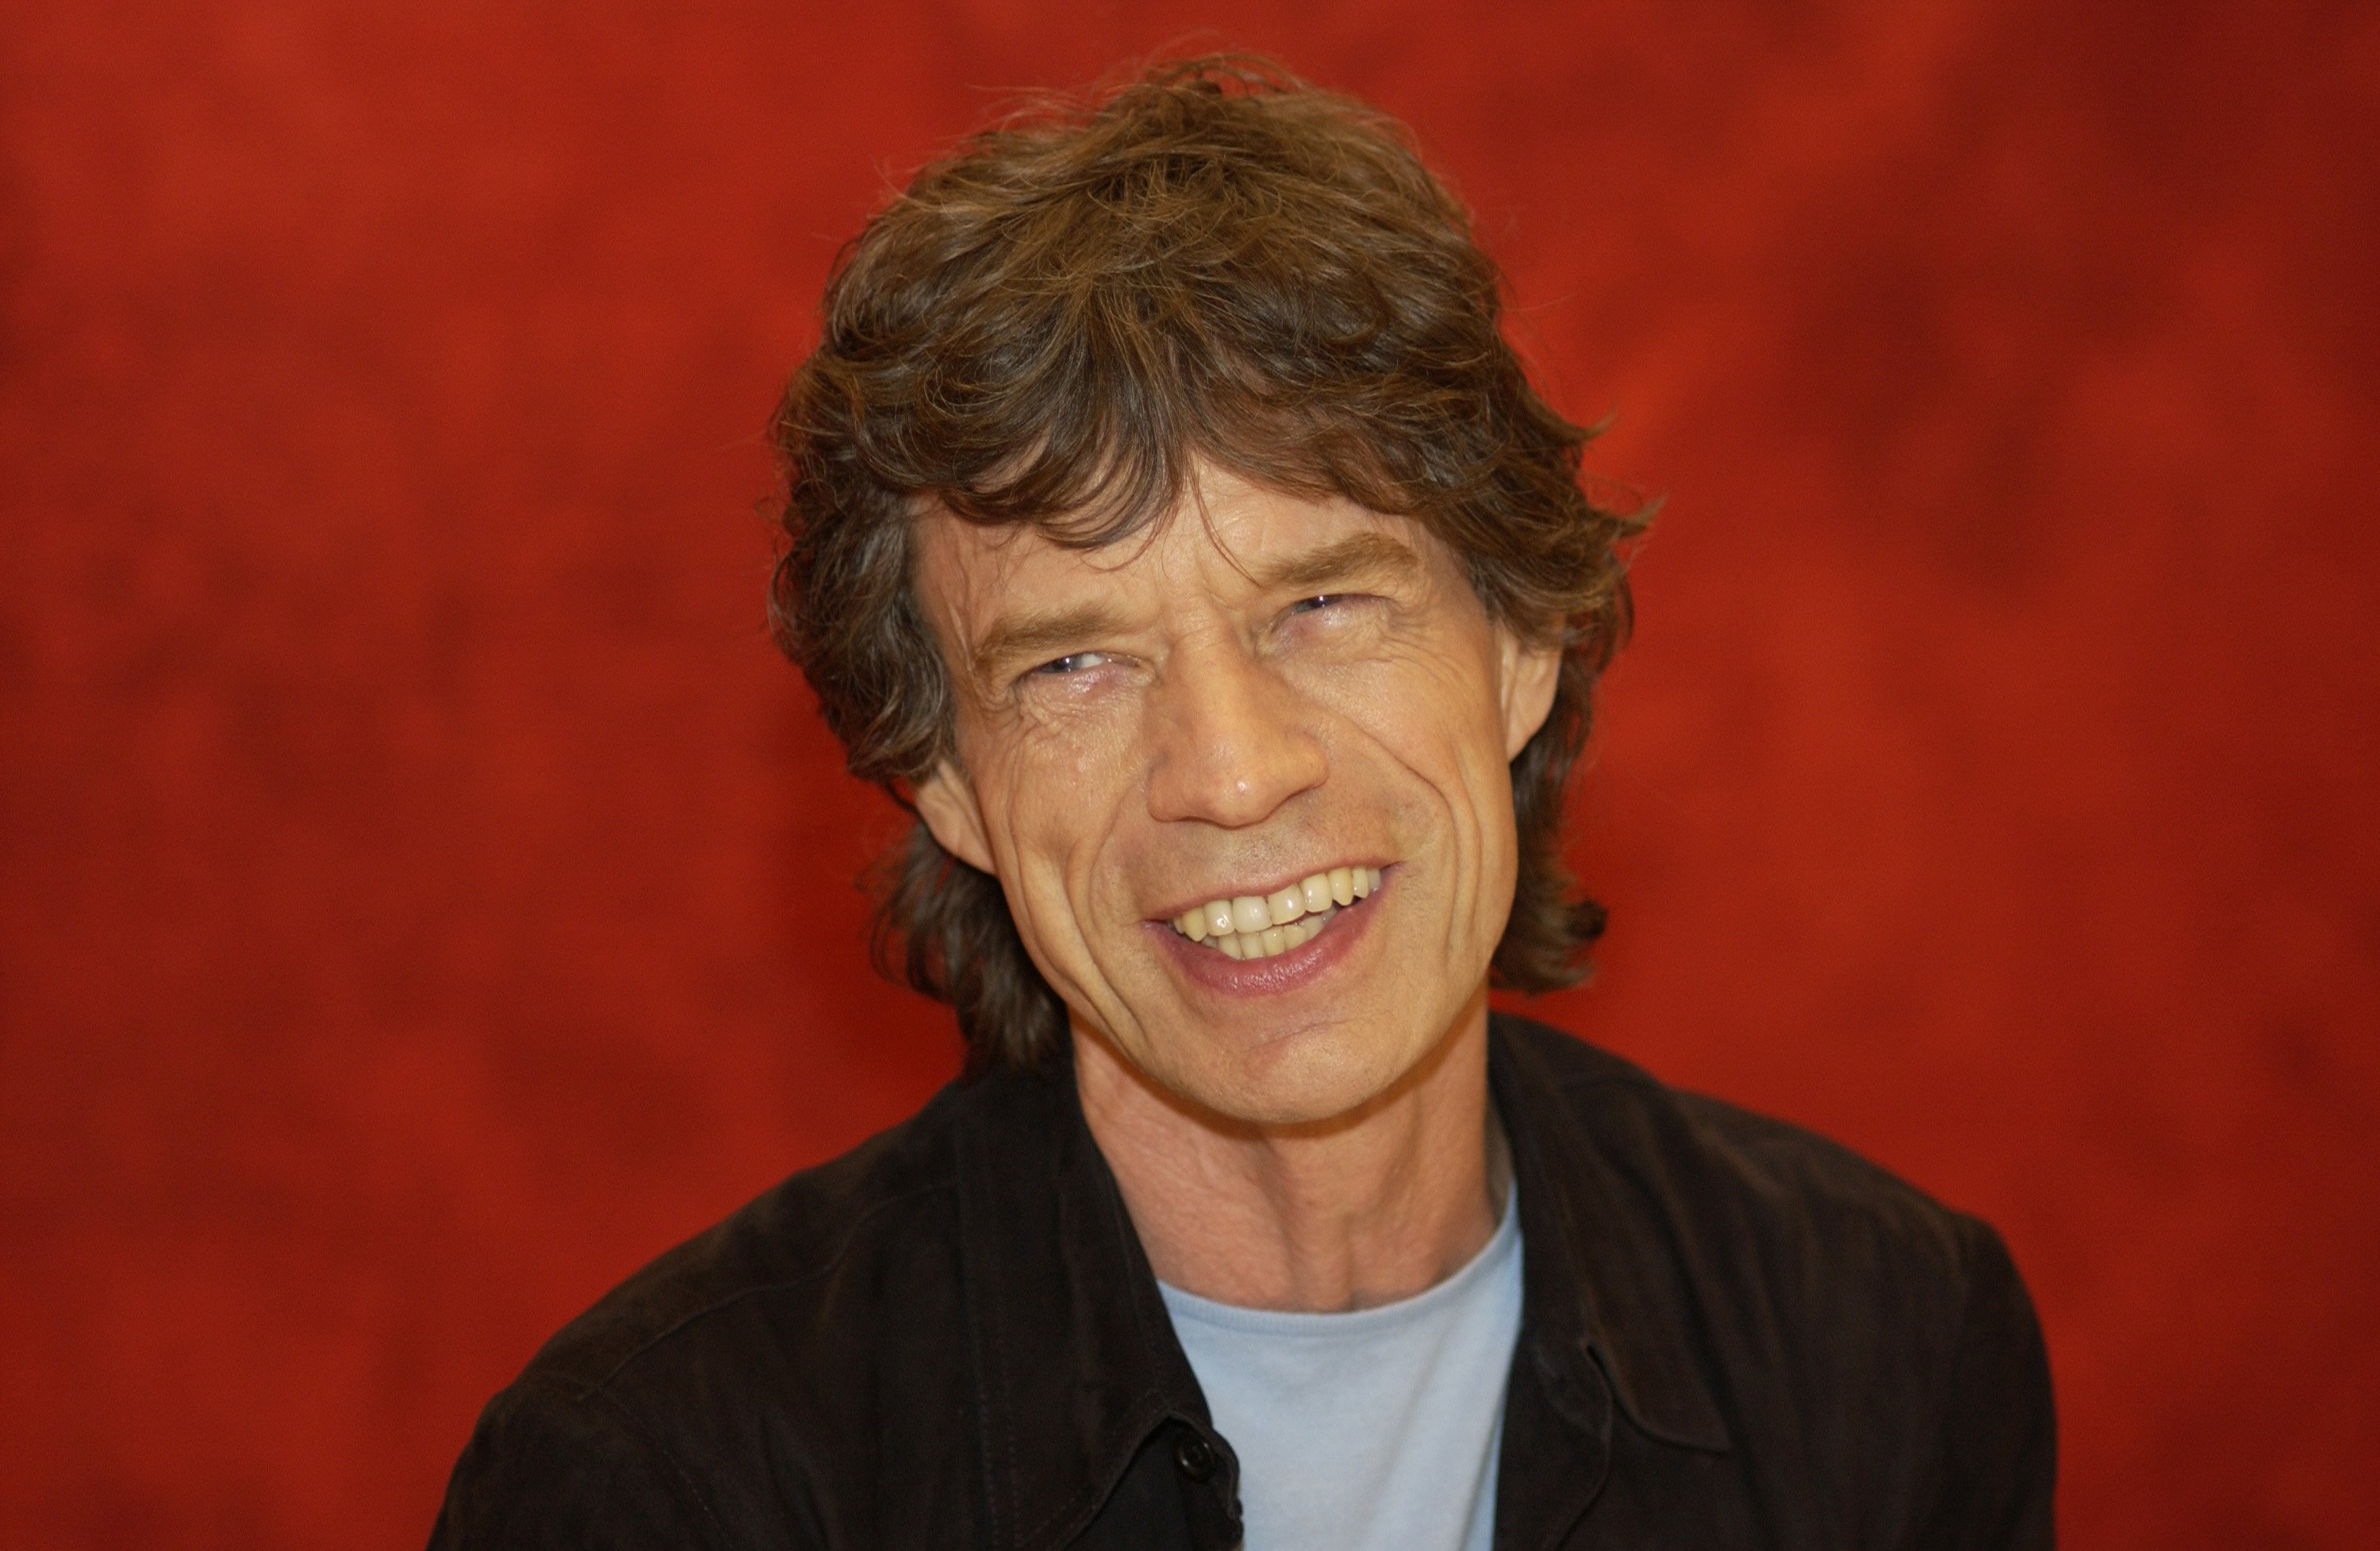 Image Source: Getty Images/Photo of Mick Jagger